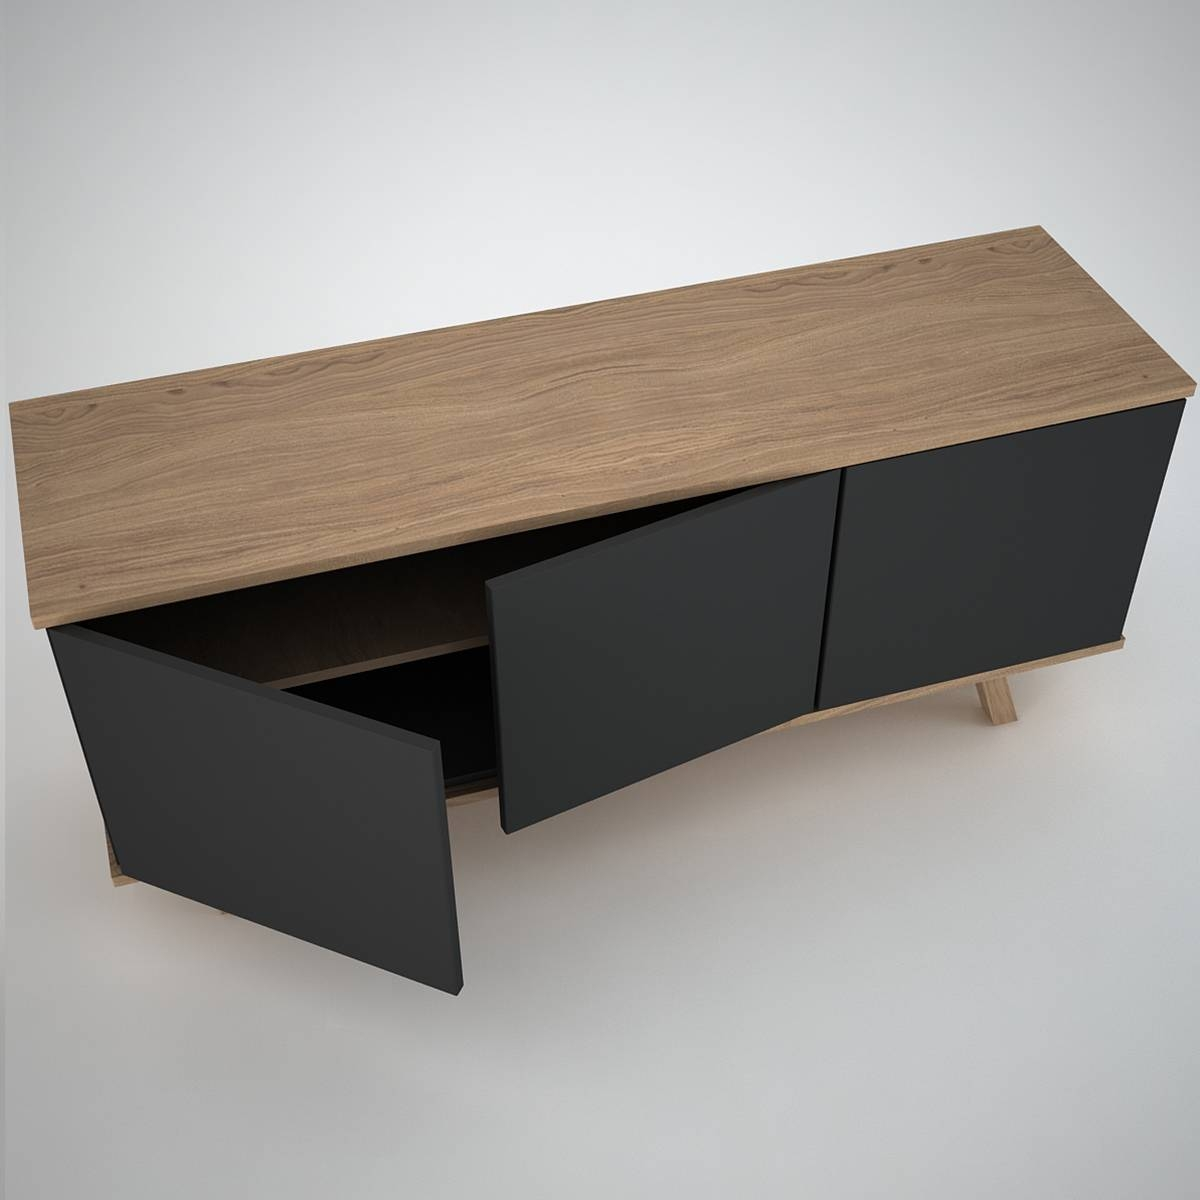 Furniture: Beautiful Profile Modern Sideboard For Living Room for Contemporary Wood Sideboards (Image 17 of 30)